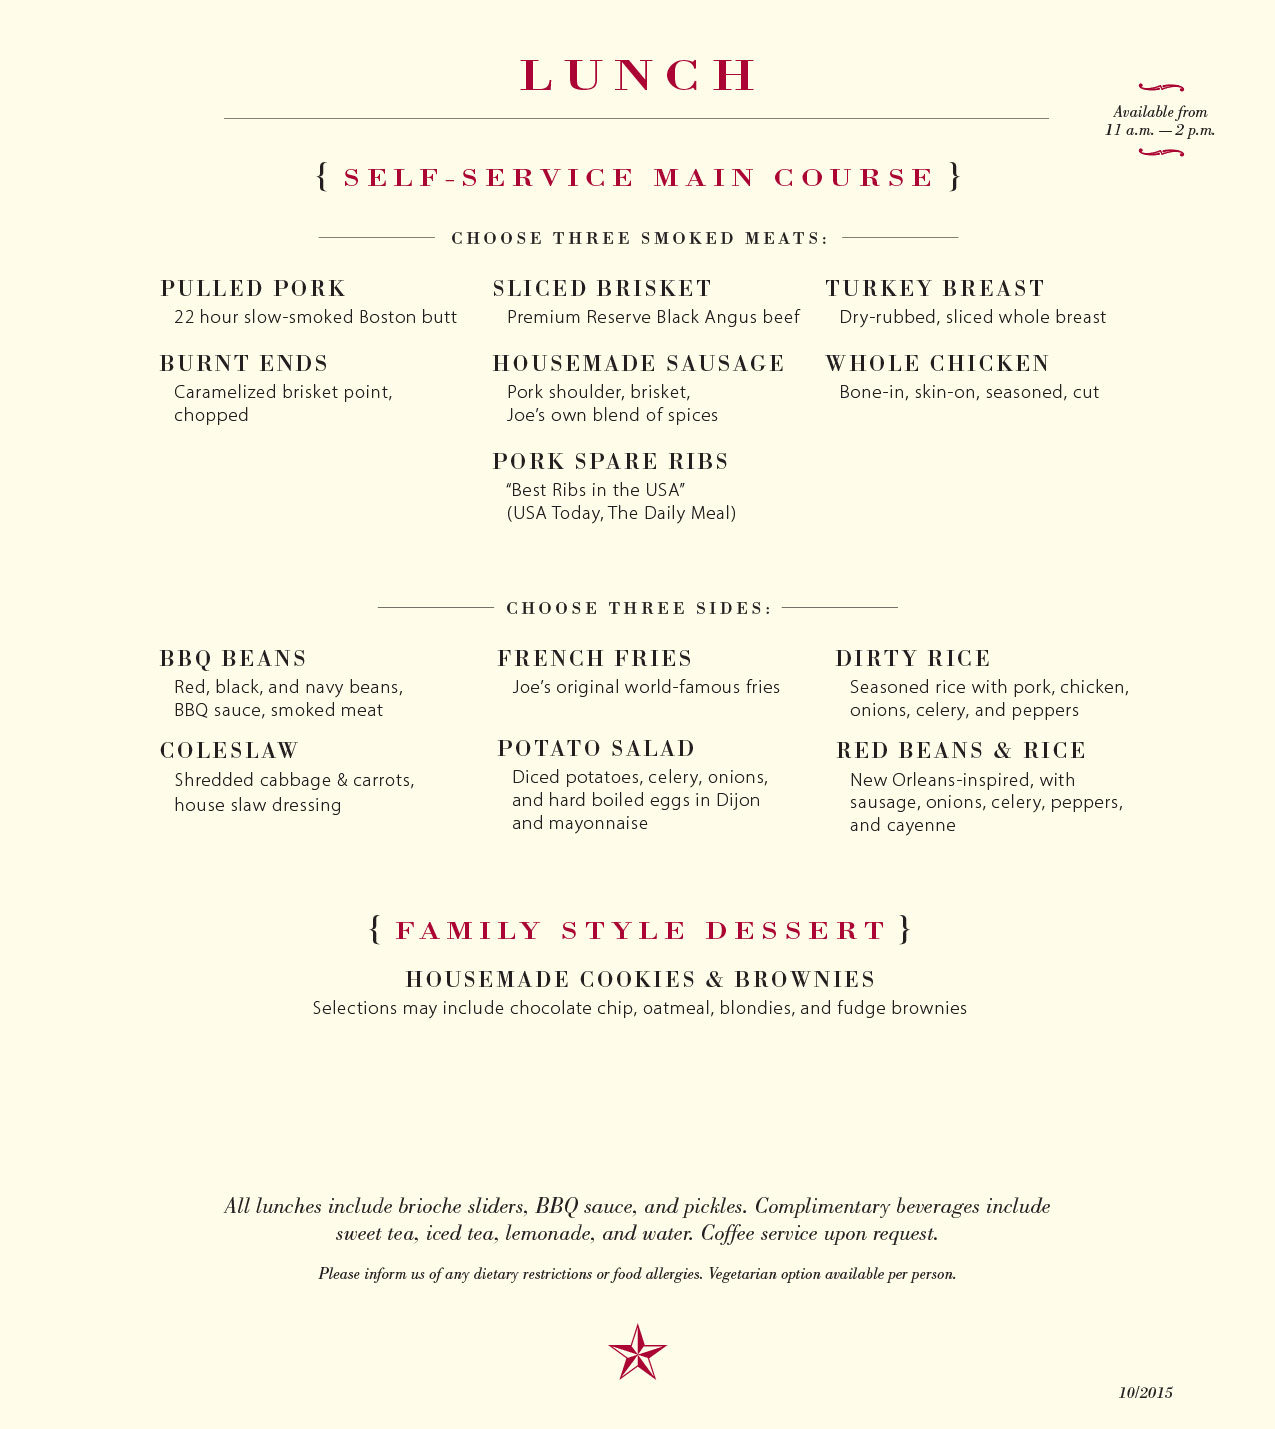 To download a PDF of the lunch menu, click here.